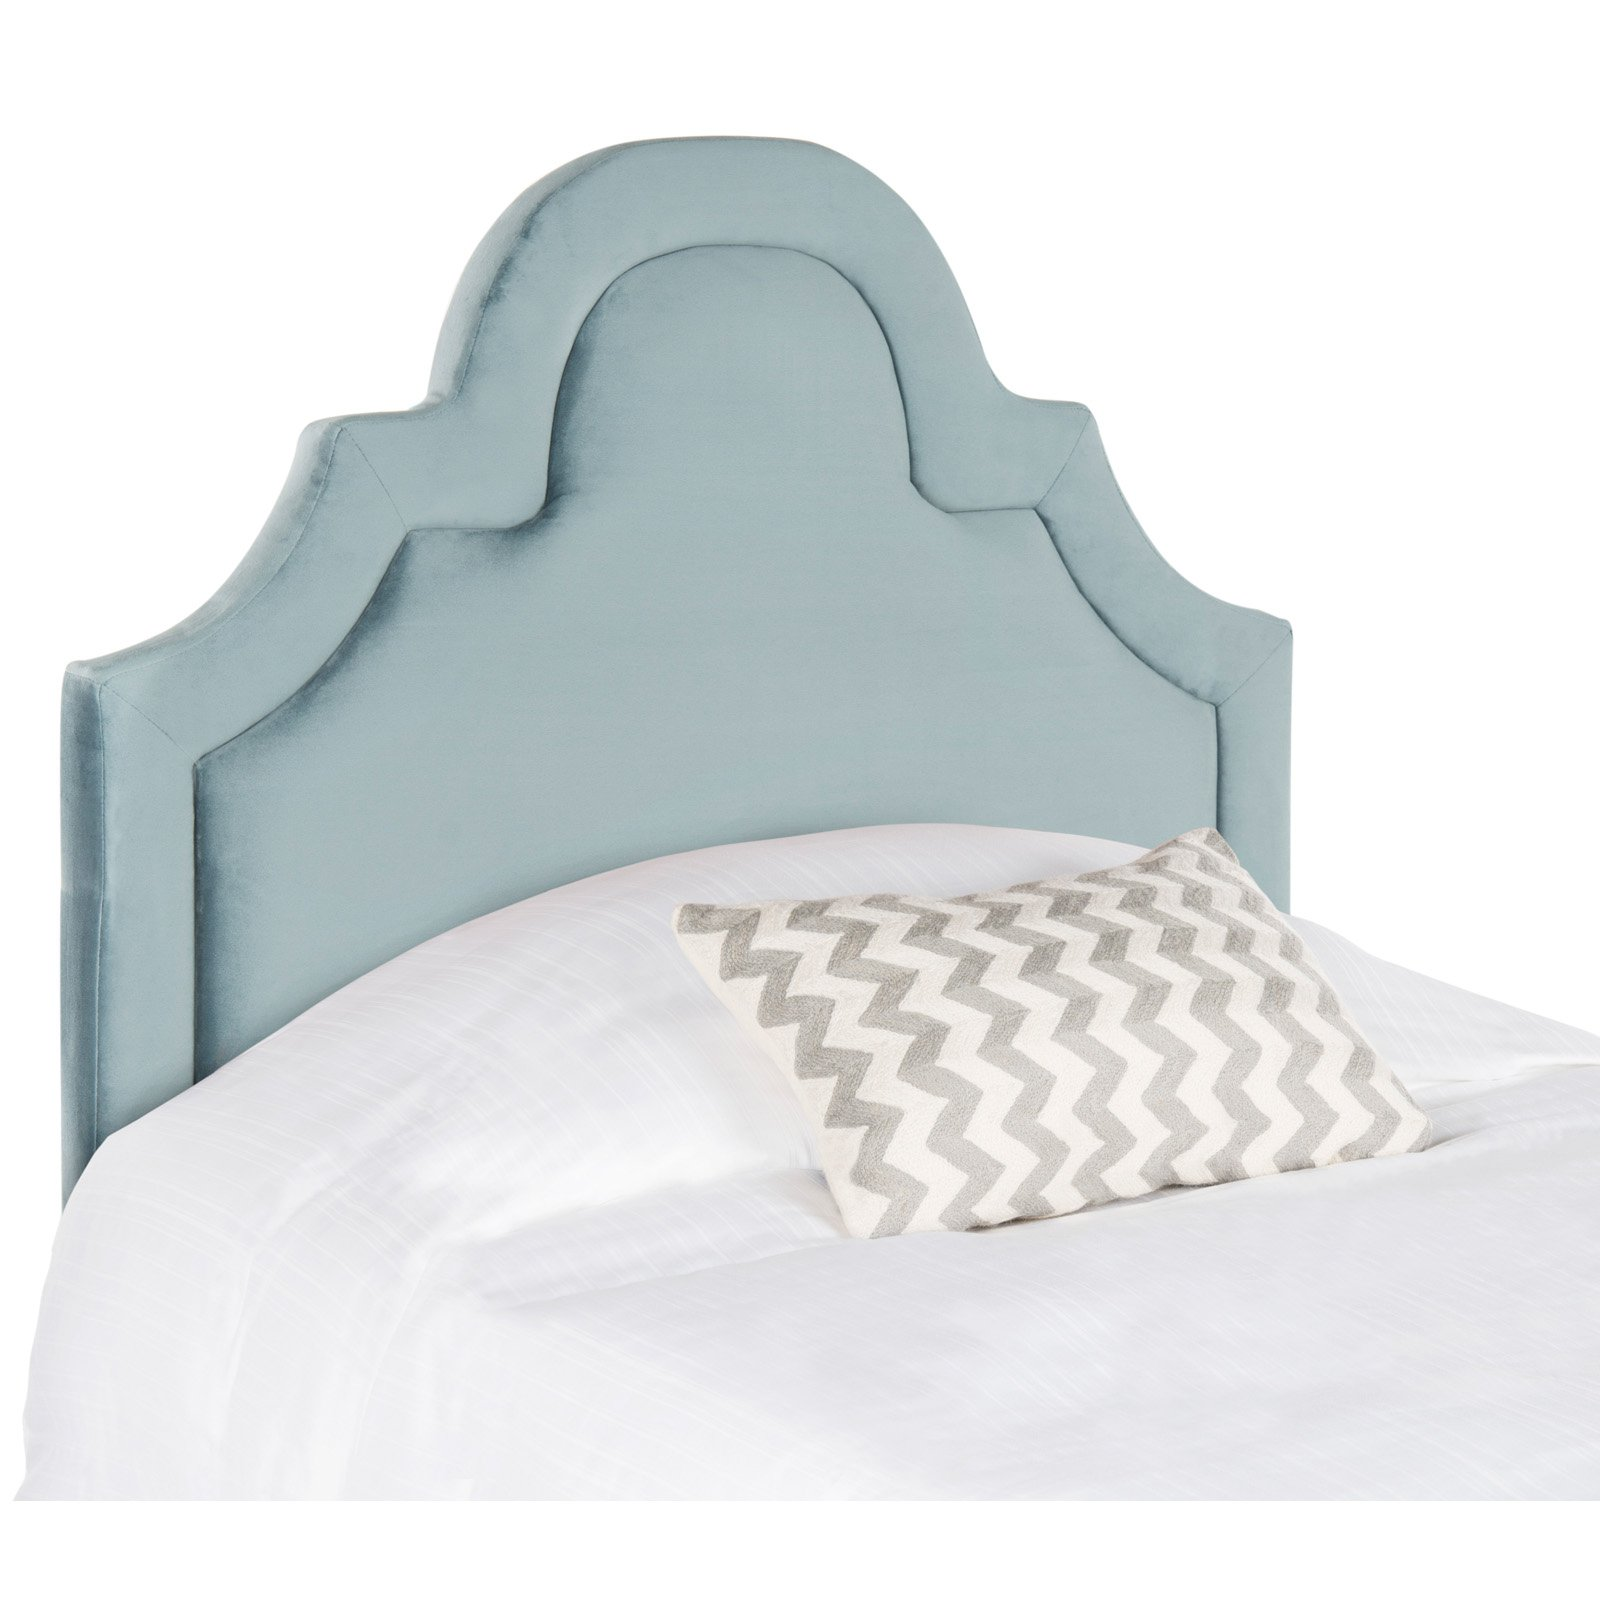 Safavieh Kerstin Arched Headboard, Available in Multiple Colors and Sizes